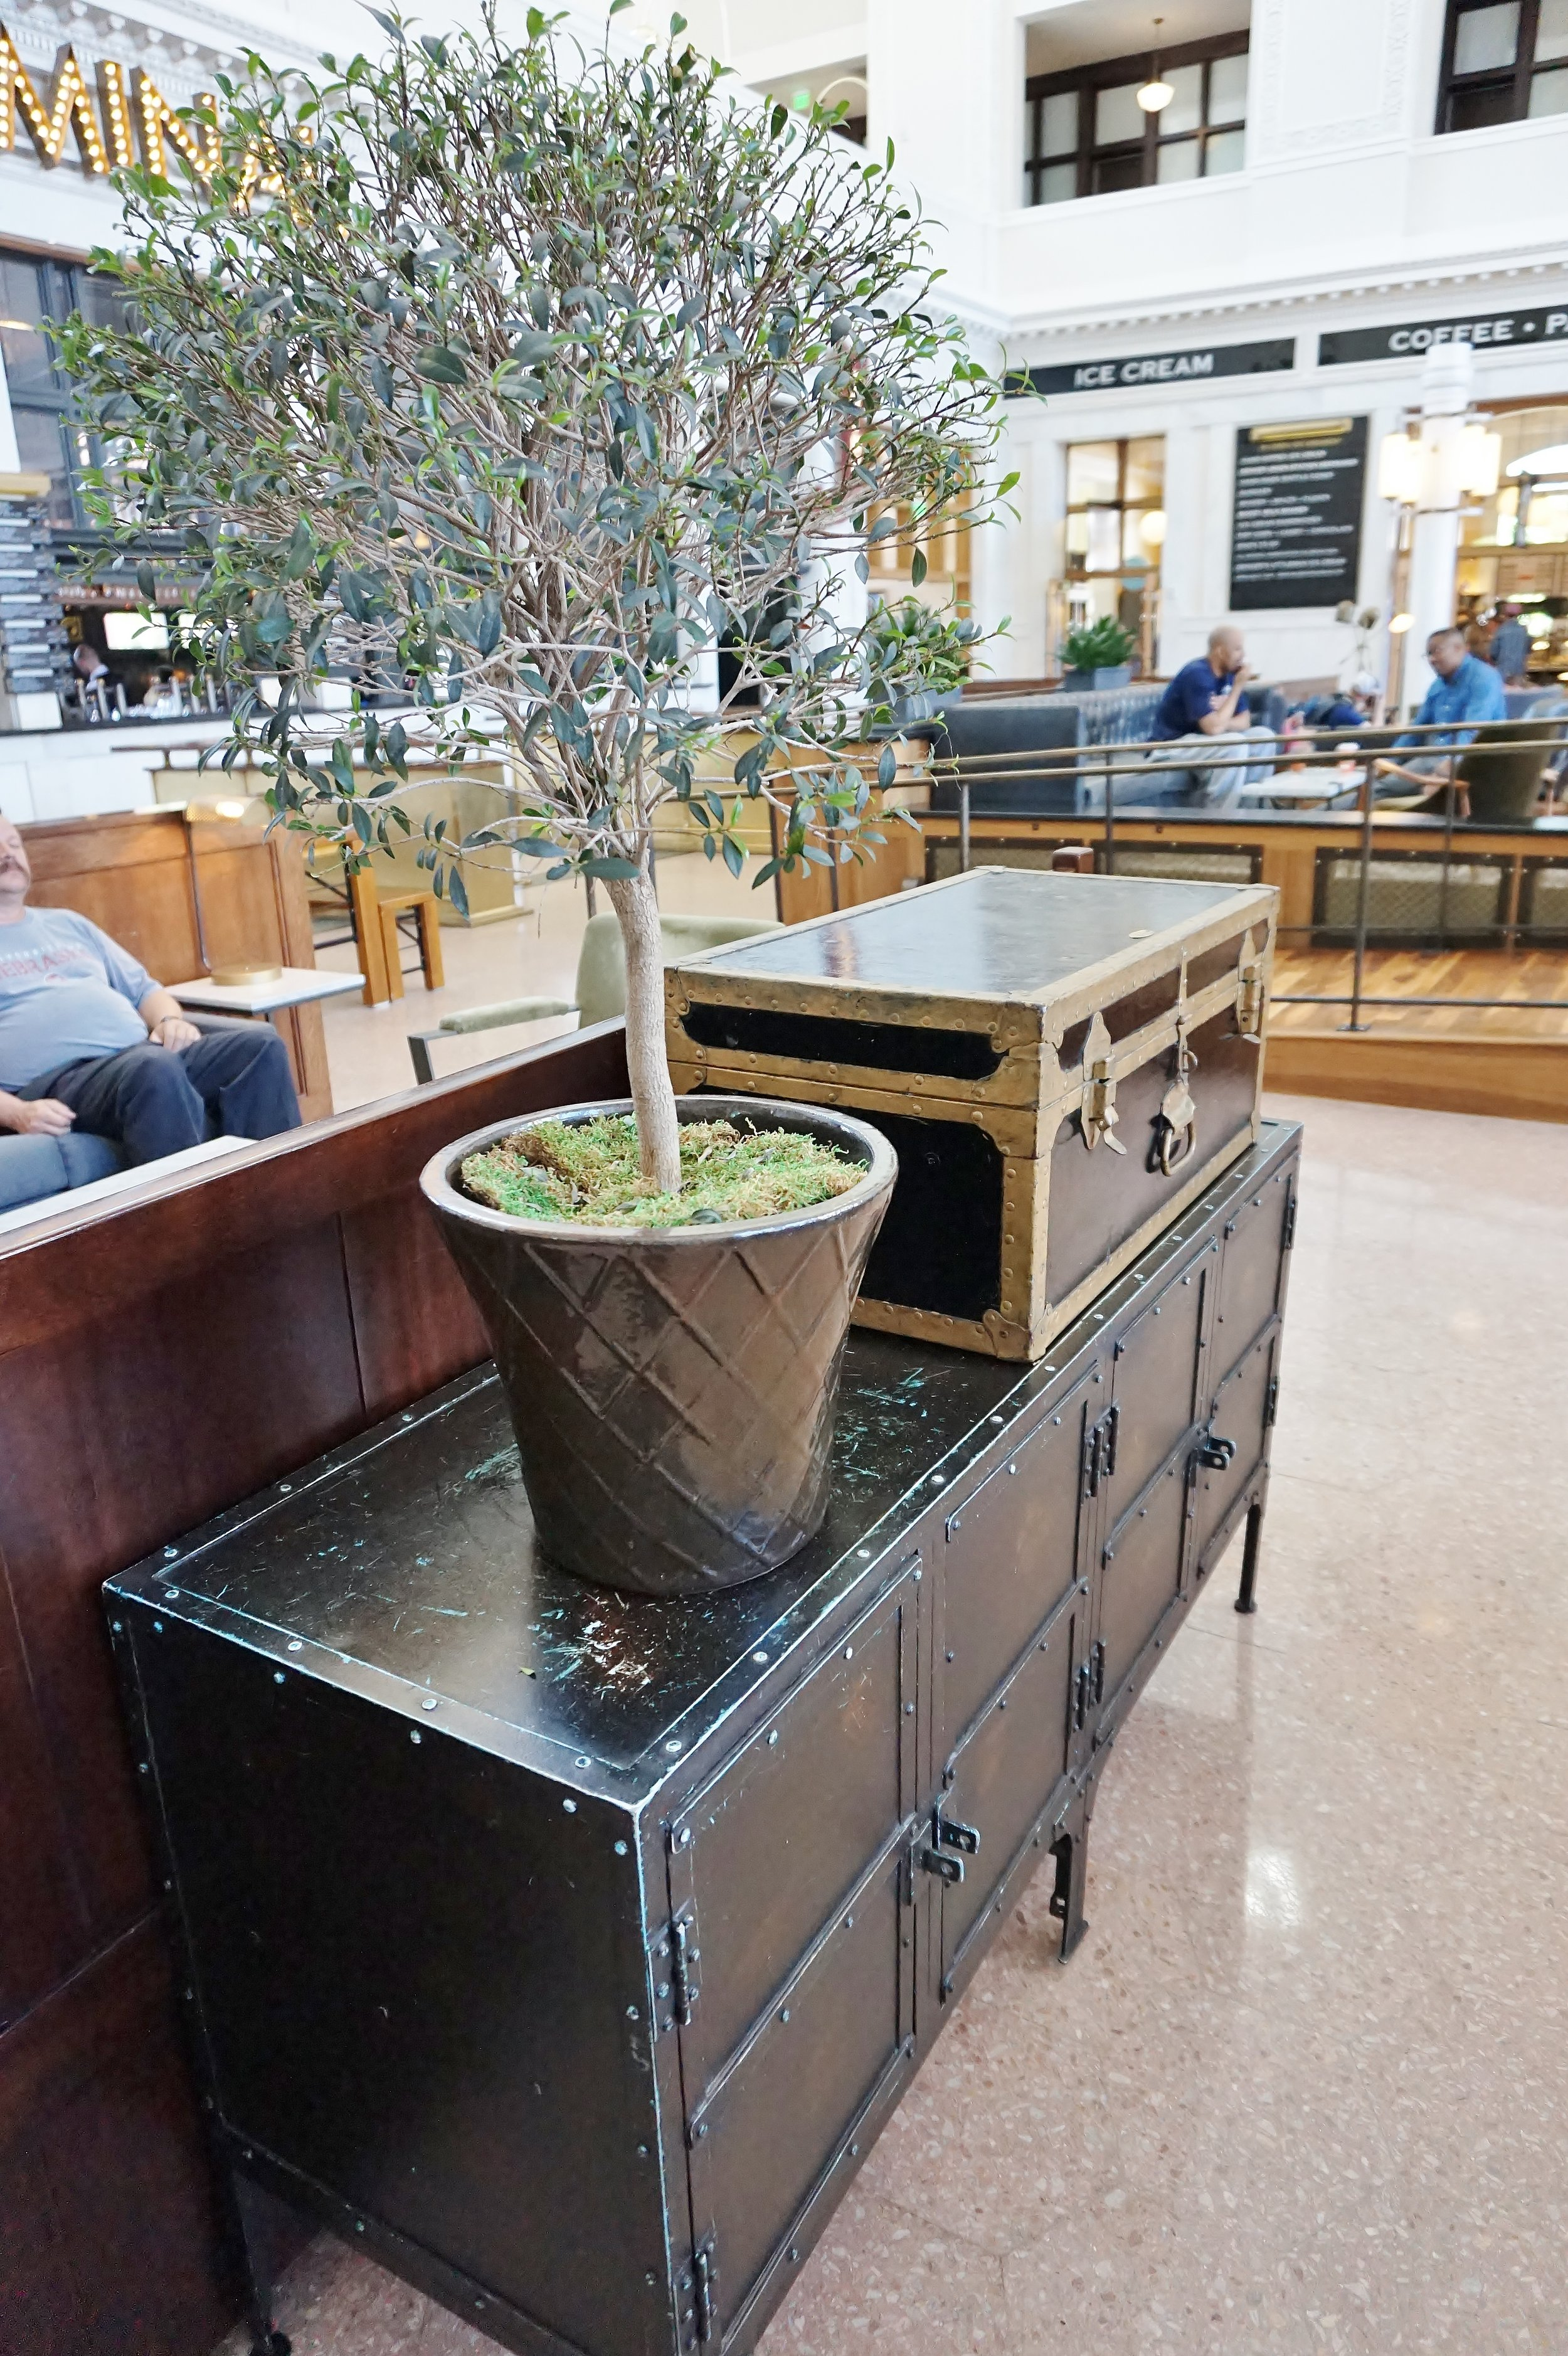 Trunks and industrial style furnishings are used as accent pieces in the lobby of The Crawford Hotel | Union Station | Denver